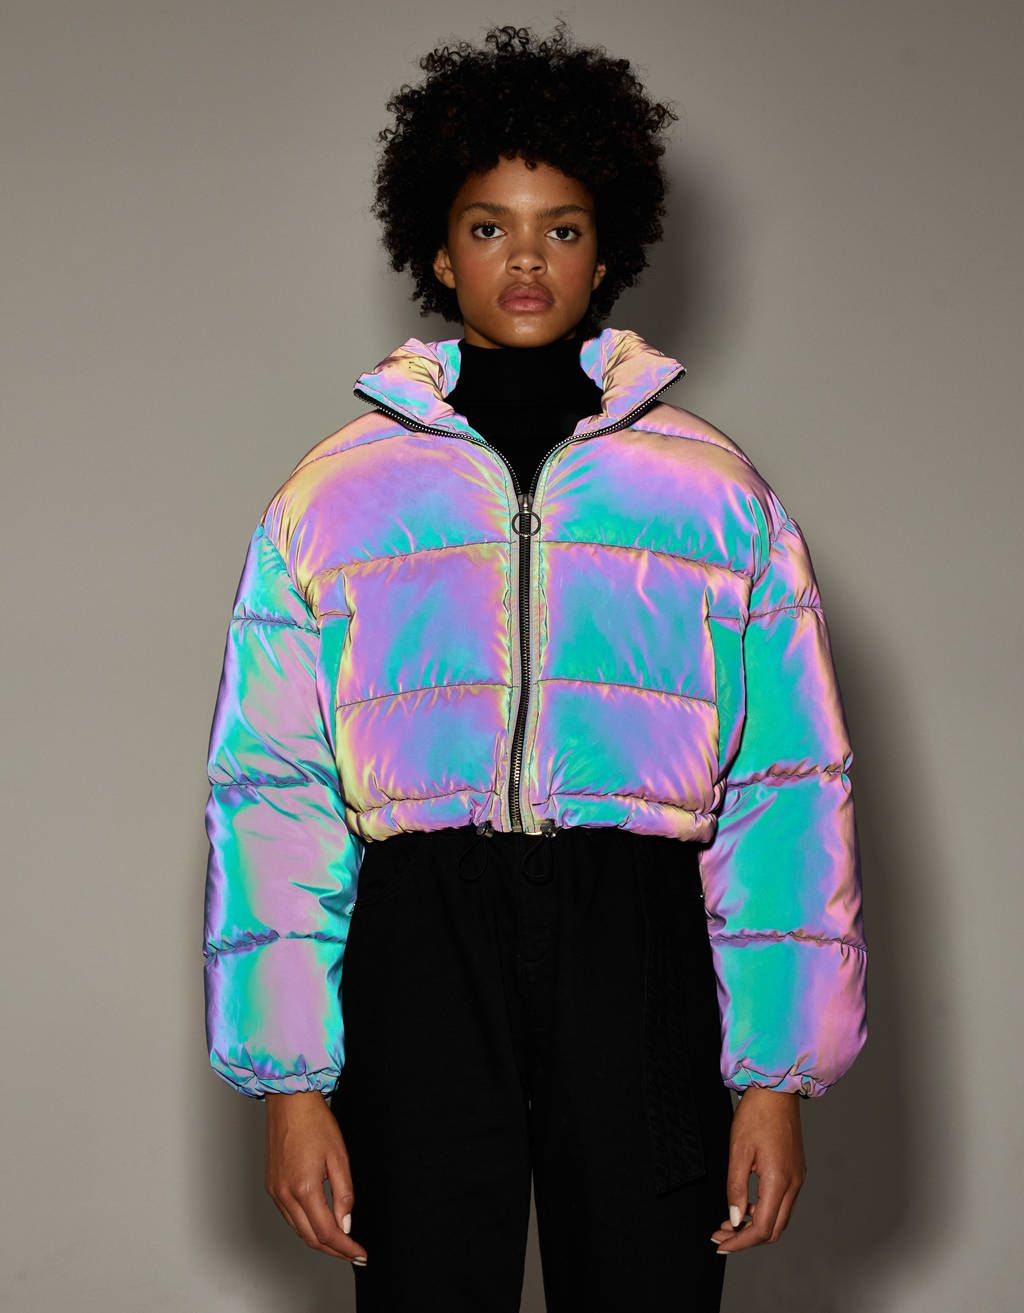 Reflective Puffer Jacket Discover This And Many More Items In Bershka With New Products Every Week Reflective Clothing Fashion Holographic Fashion [ 1313 x 1024 Pixel ]